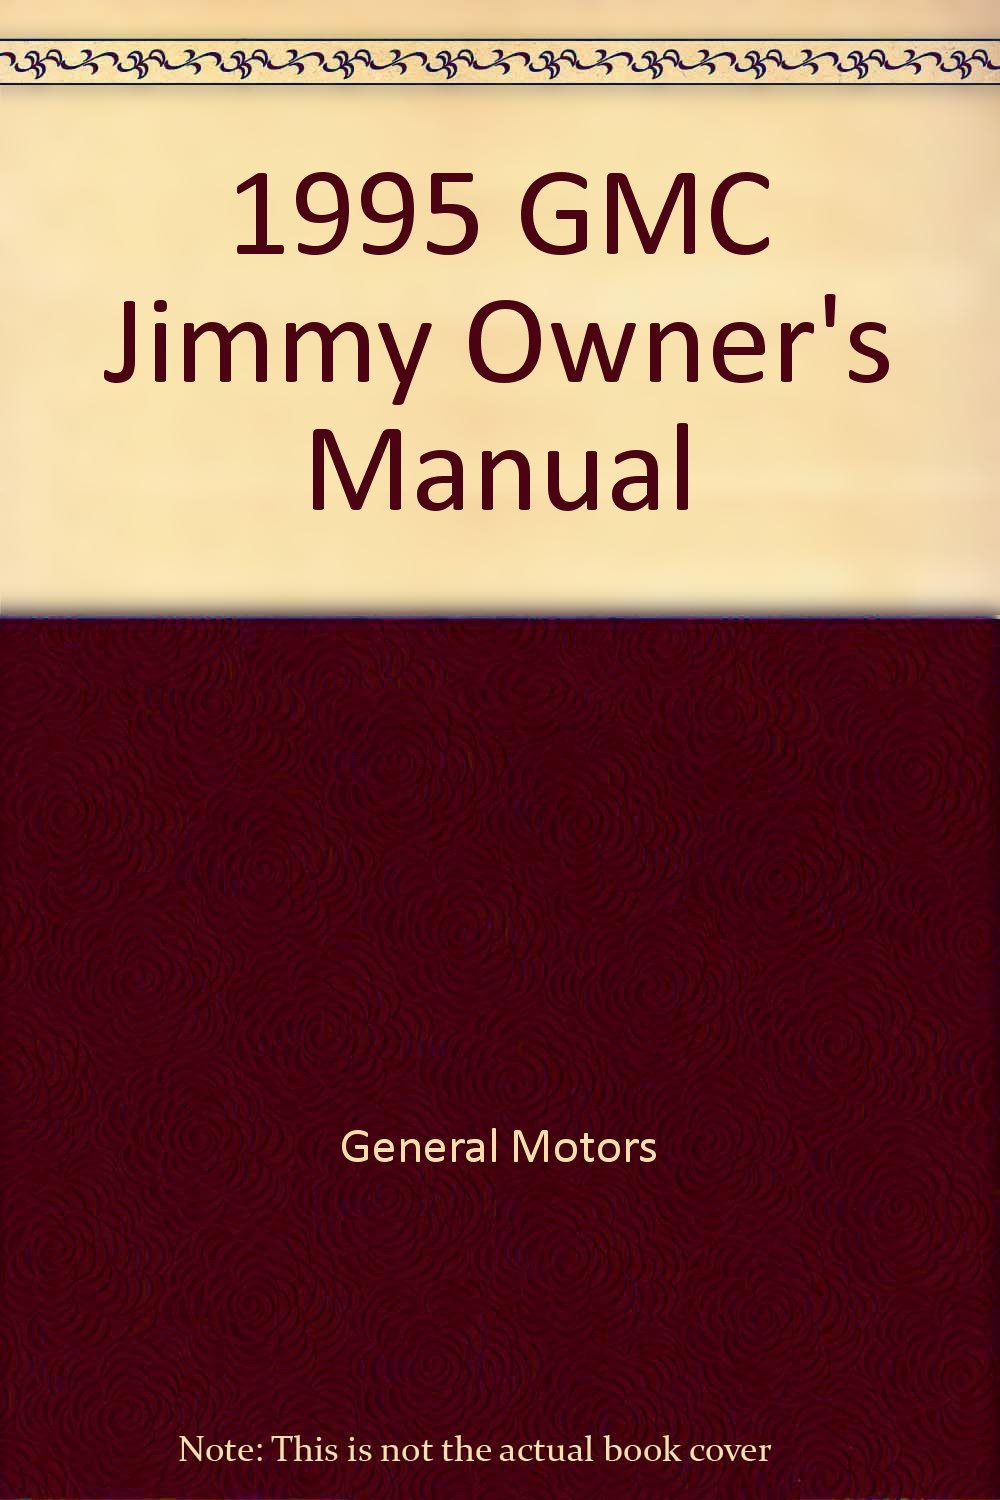 1995 GMC Jimmy Owner's Manual: General Motors Corporation: Amazon.com: Books